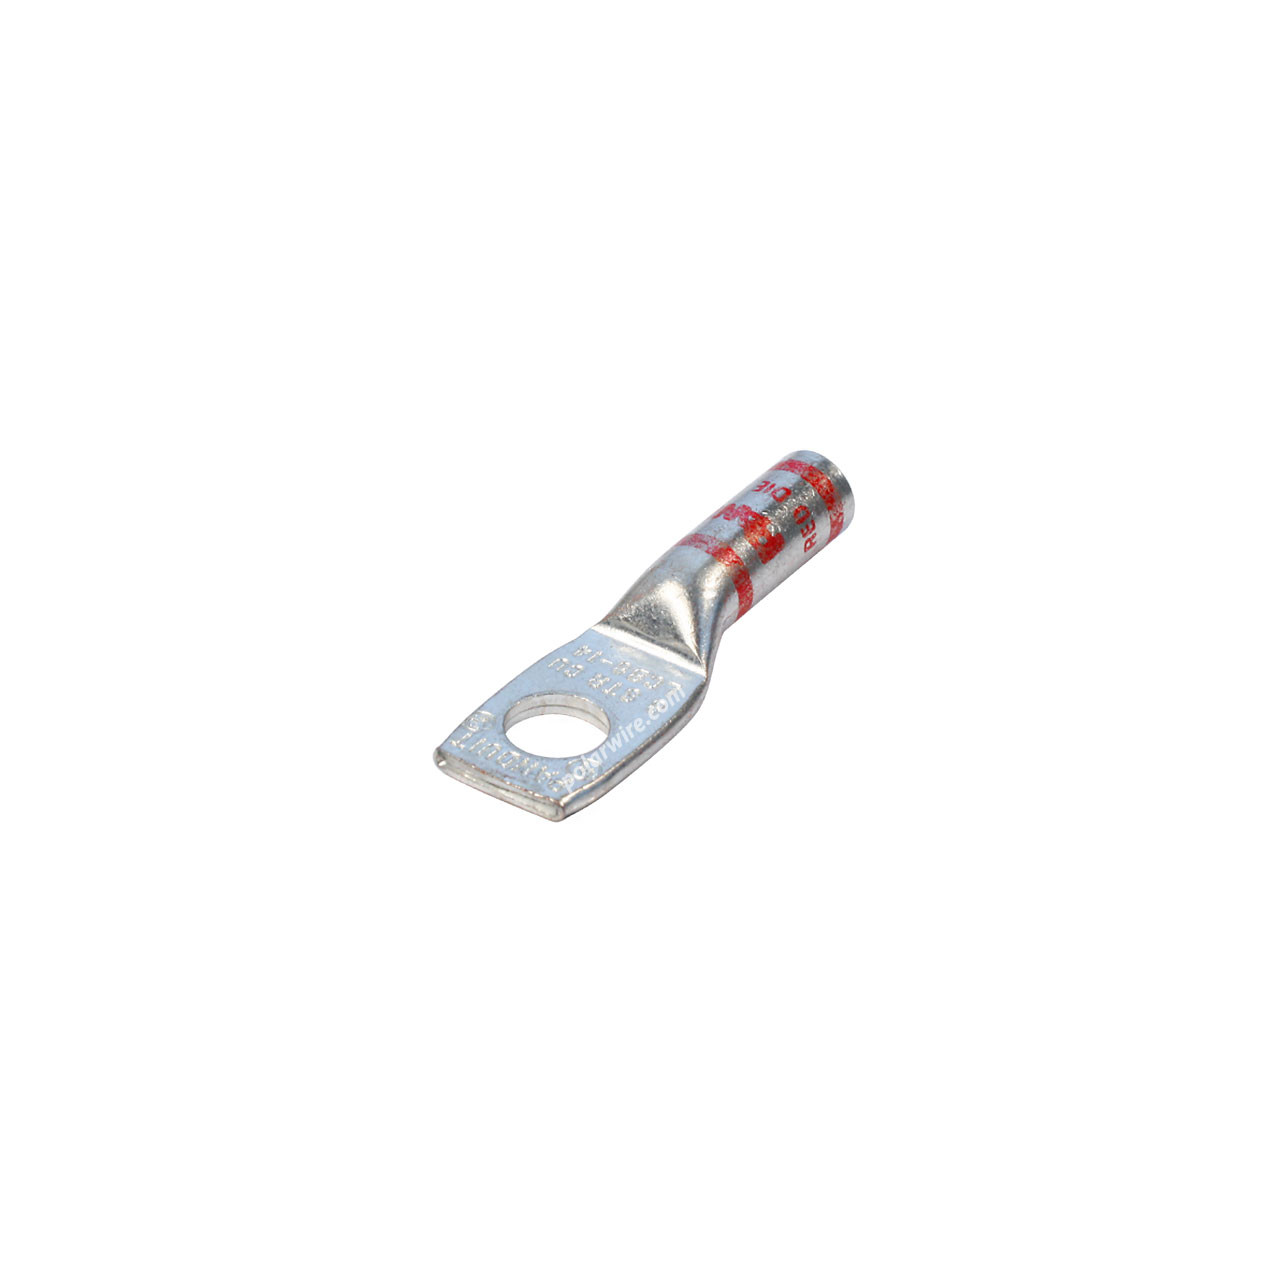 8 gauge code long barrel heavy duty compression lug, 1/4 inch stud, high strength, highly conductive electrolytic tin plated copper